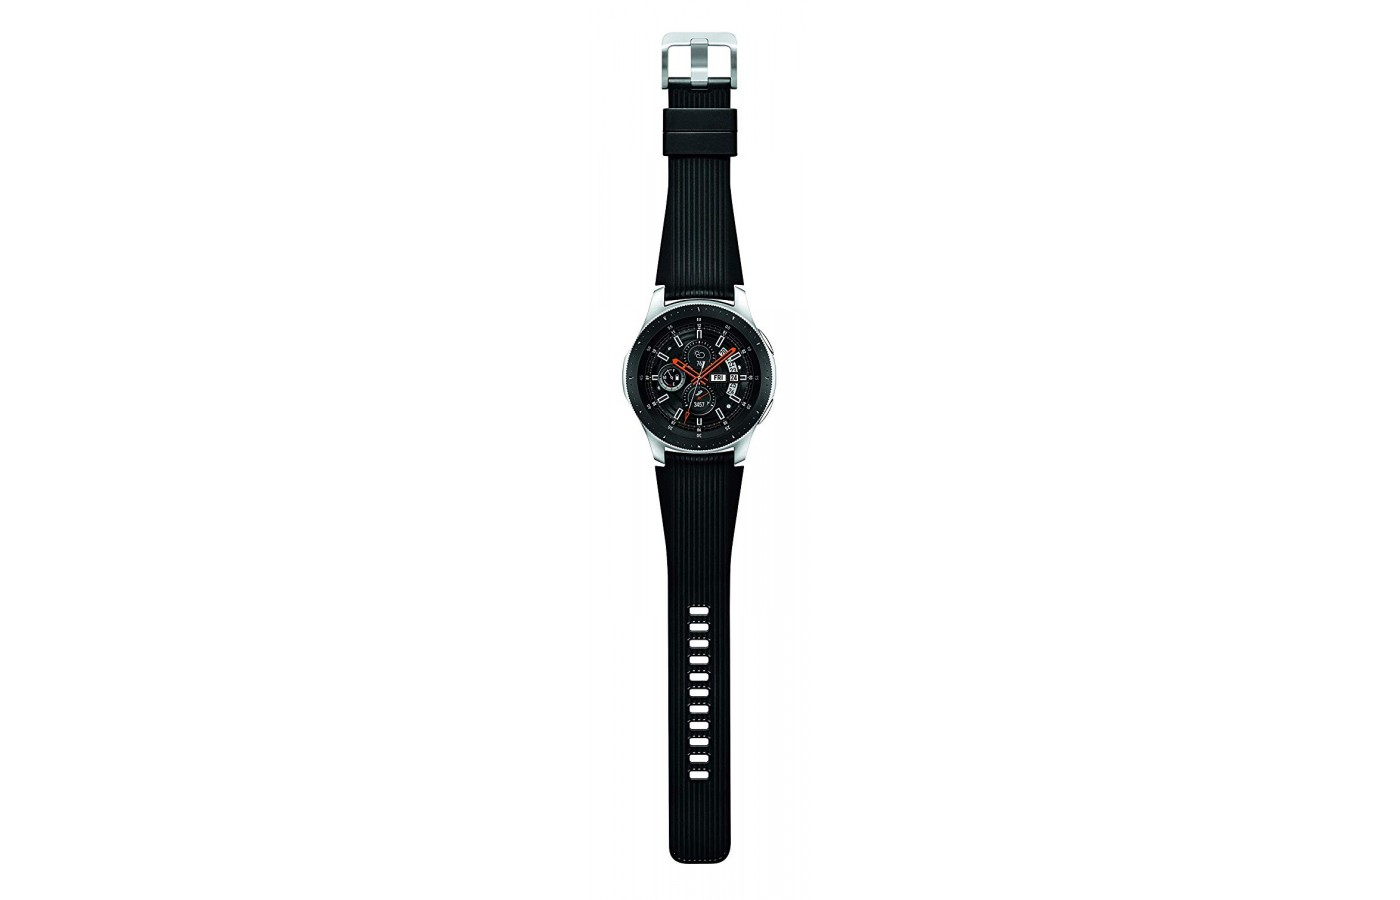 The watch is great for those into fitness.